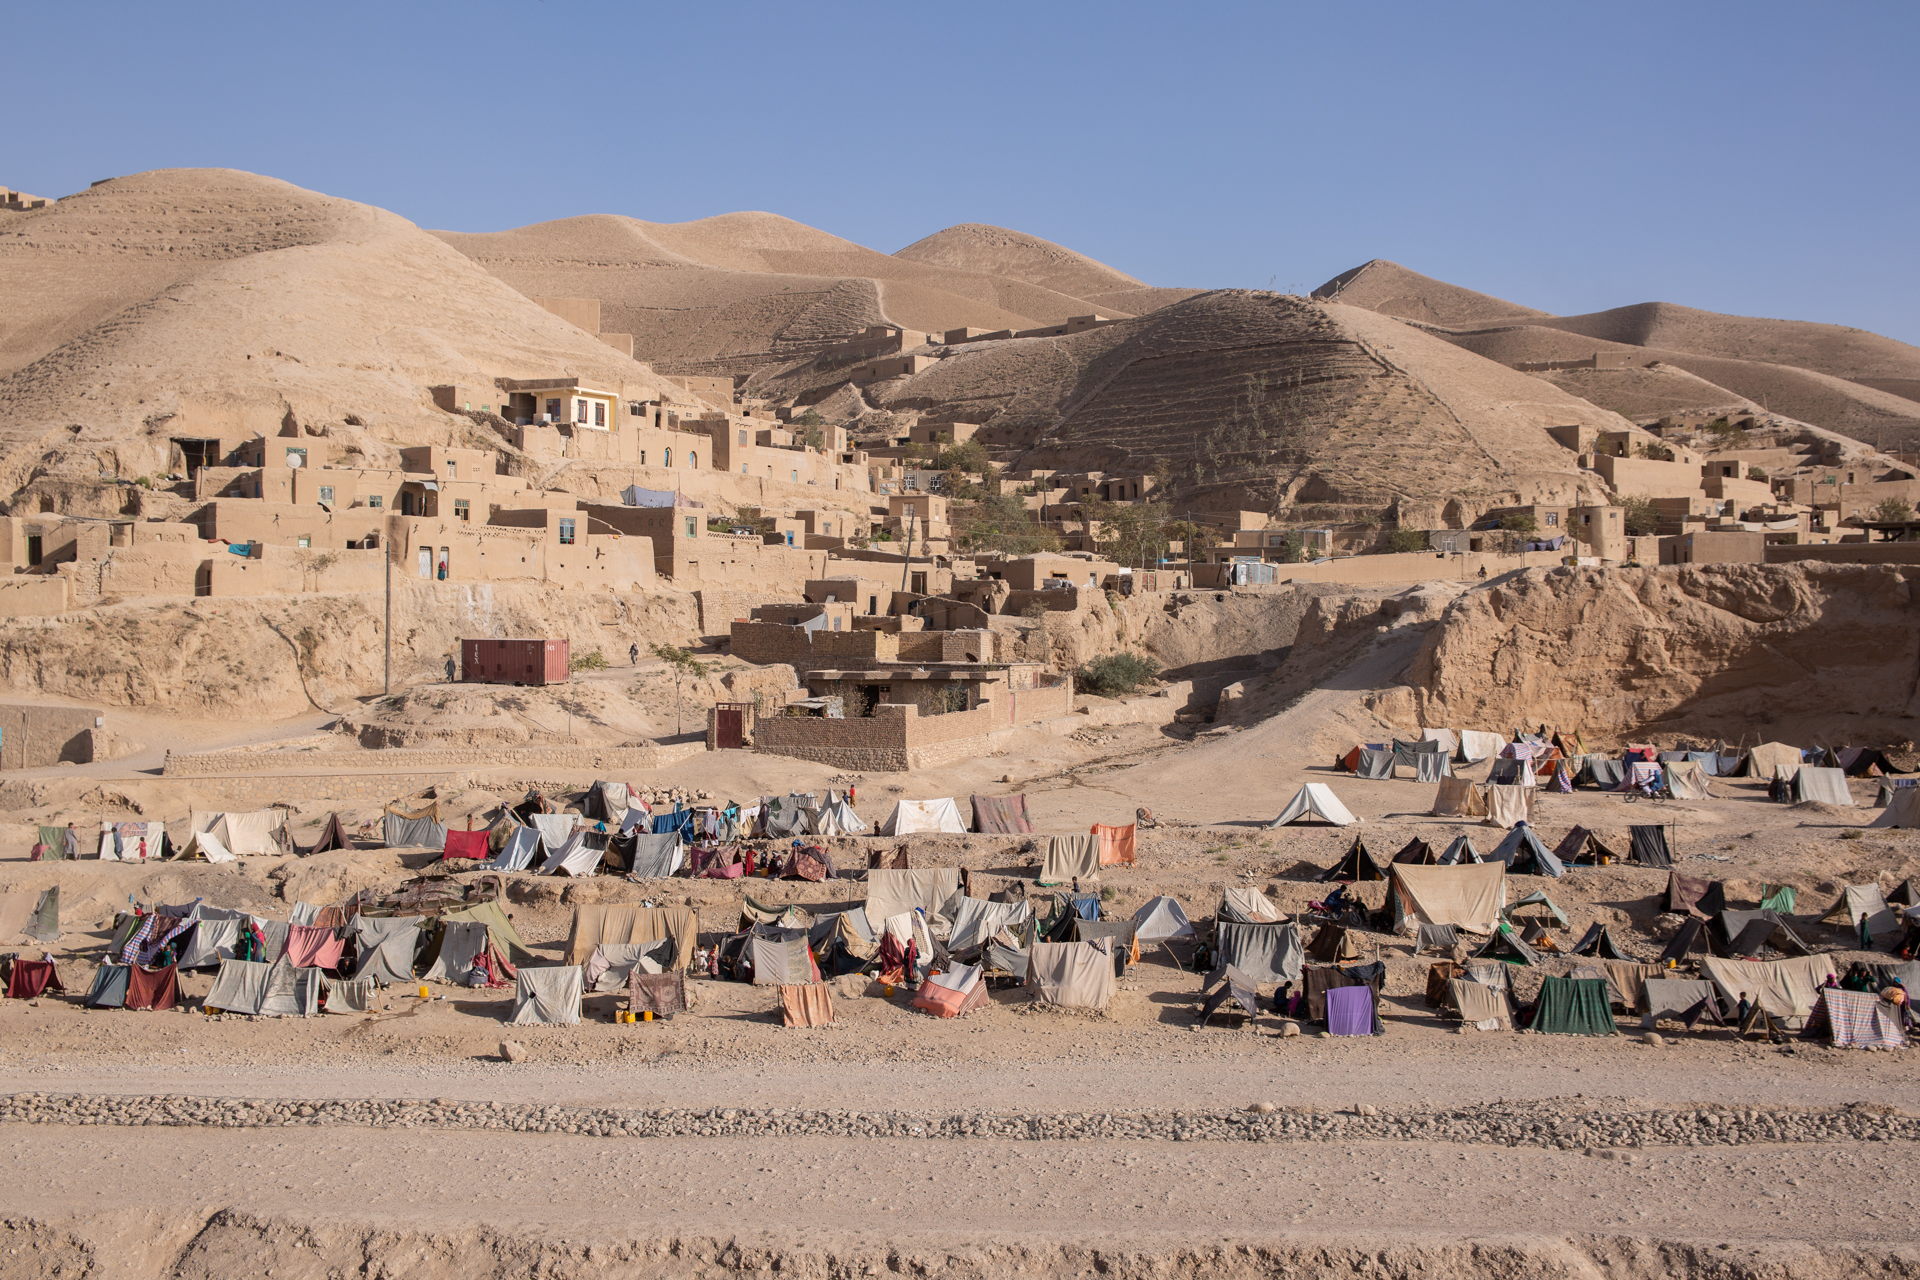 A landscape of tents on a sandy mountain